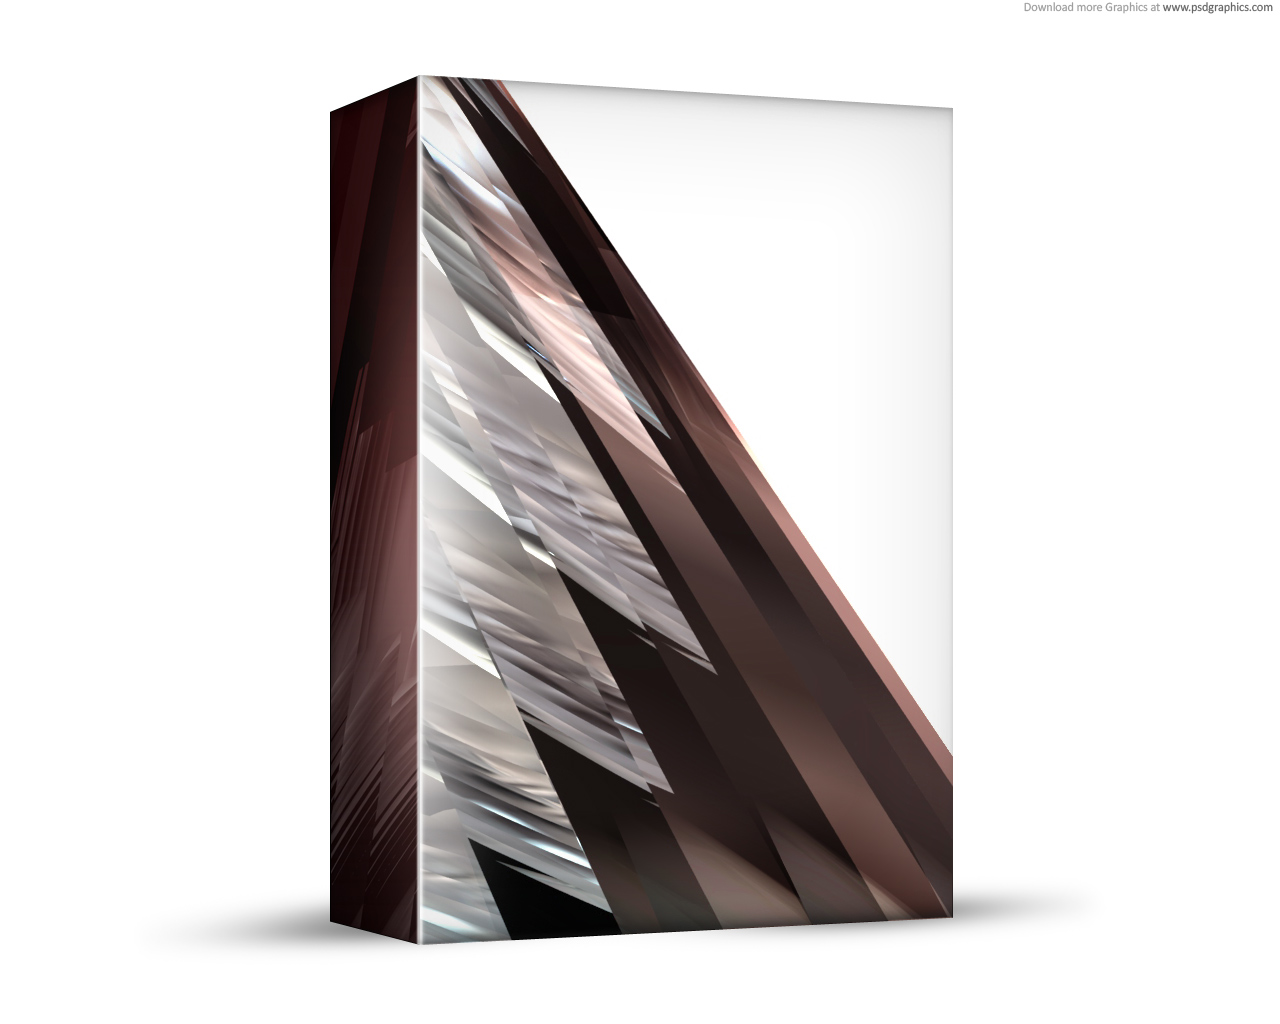 abstract brown 3d box template psd psdgraphics